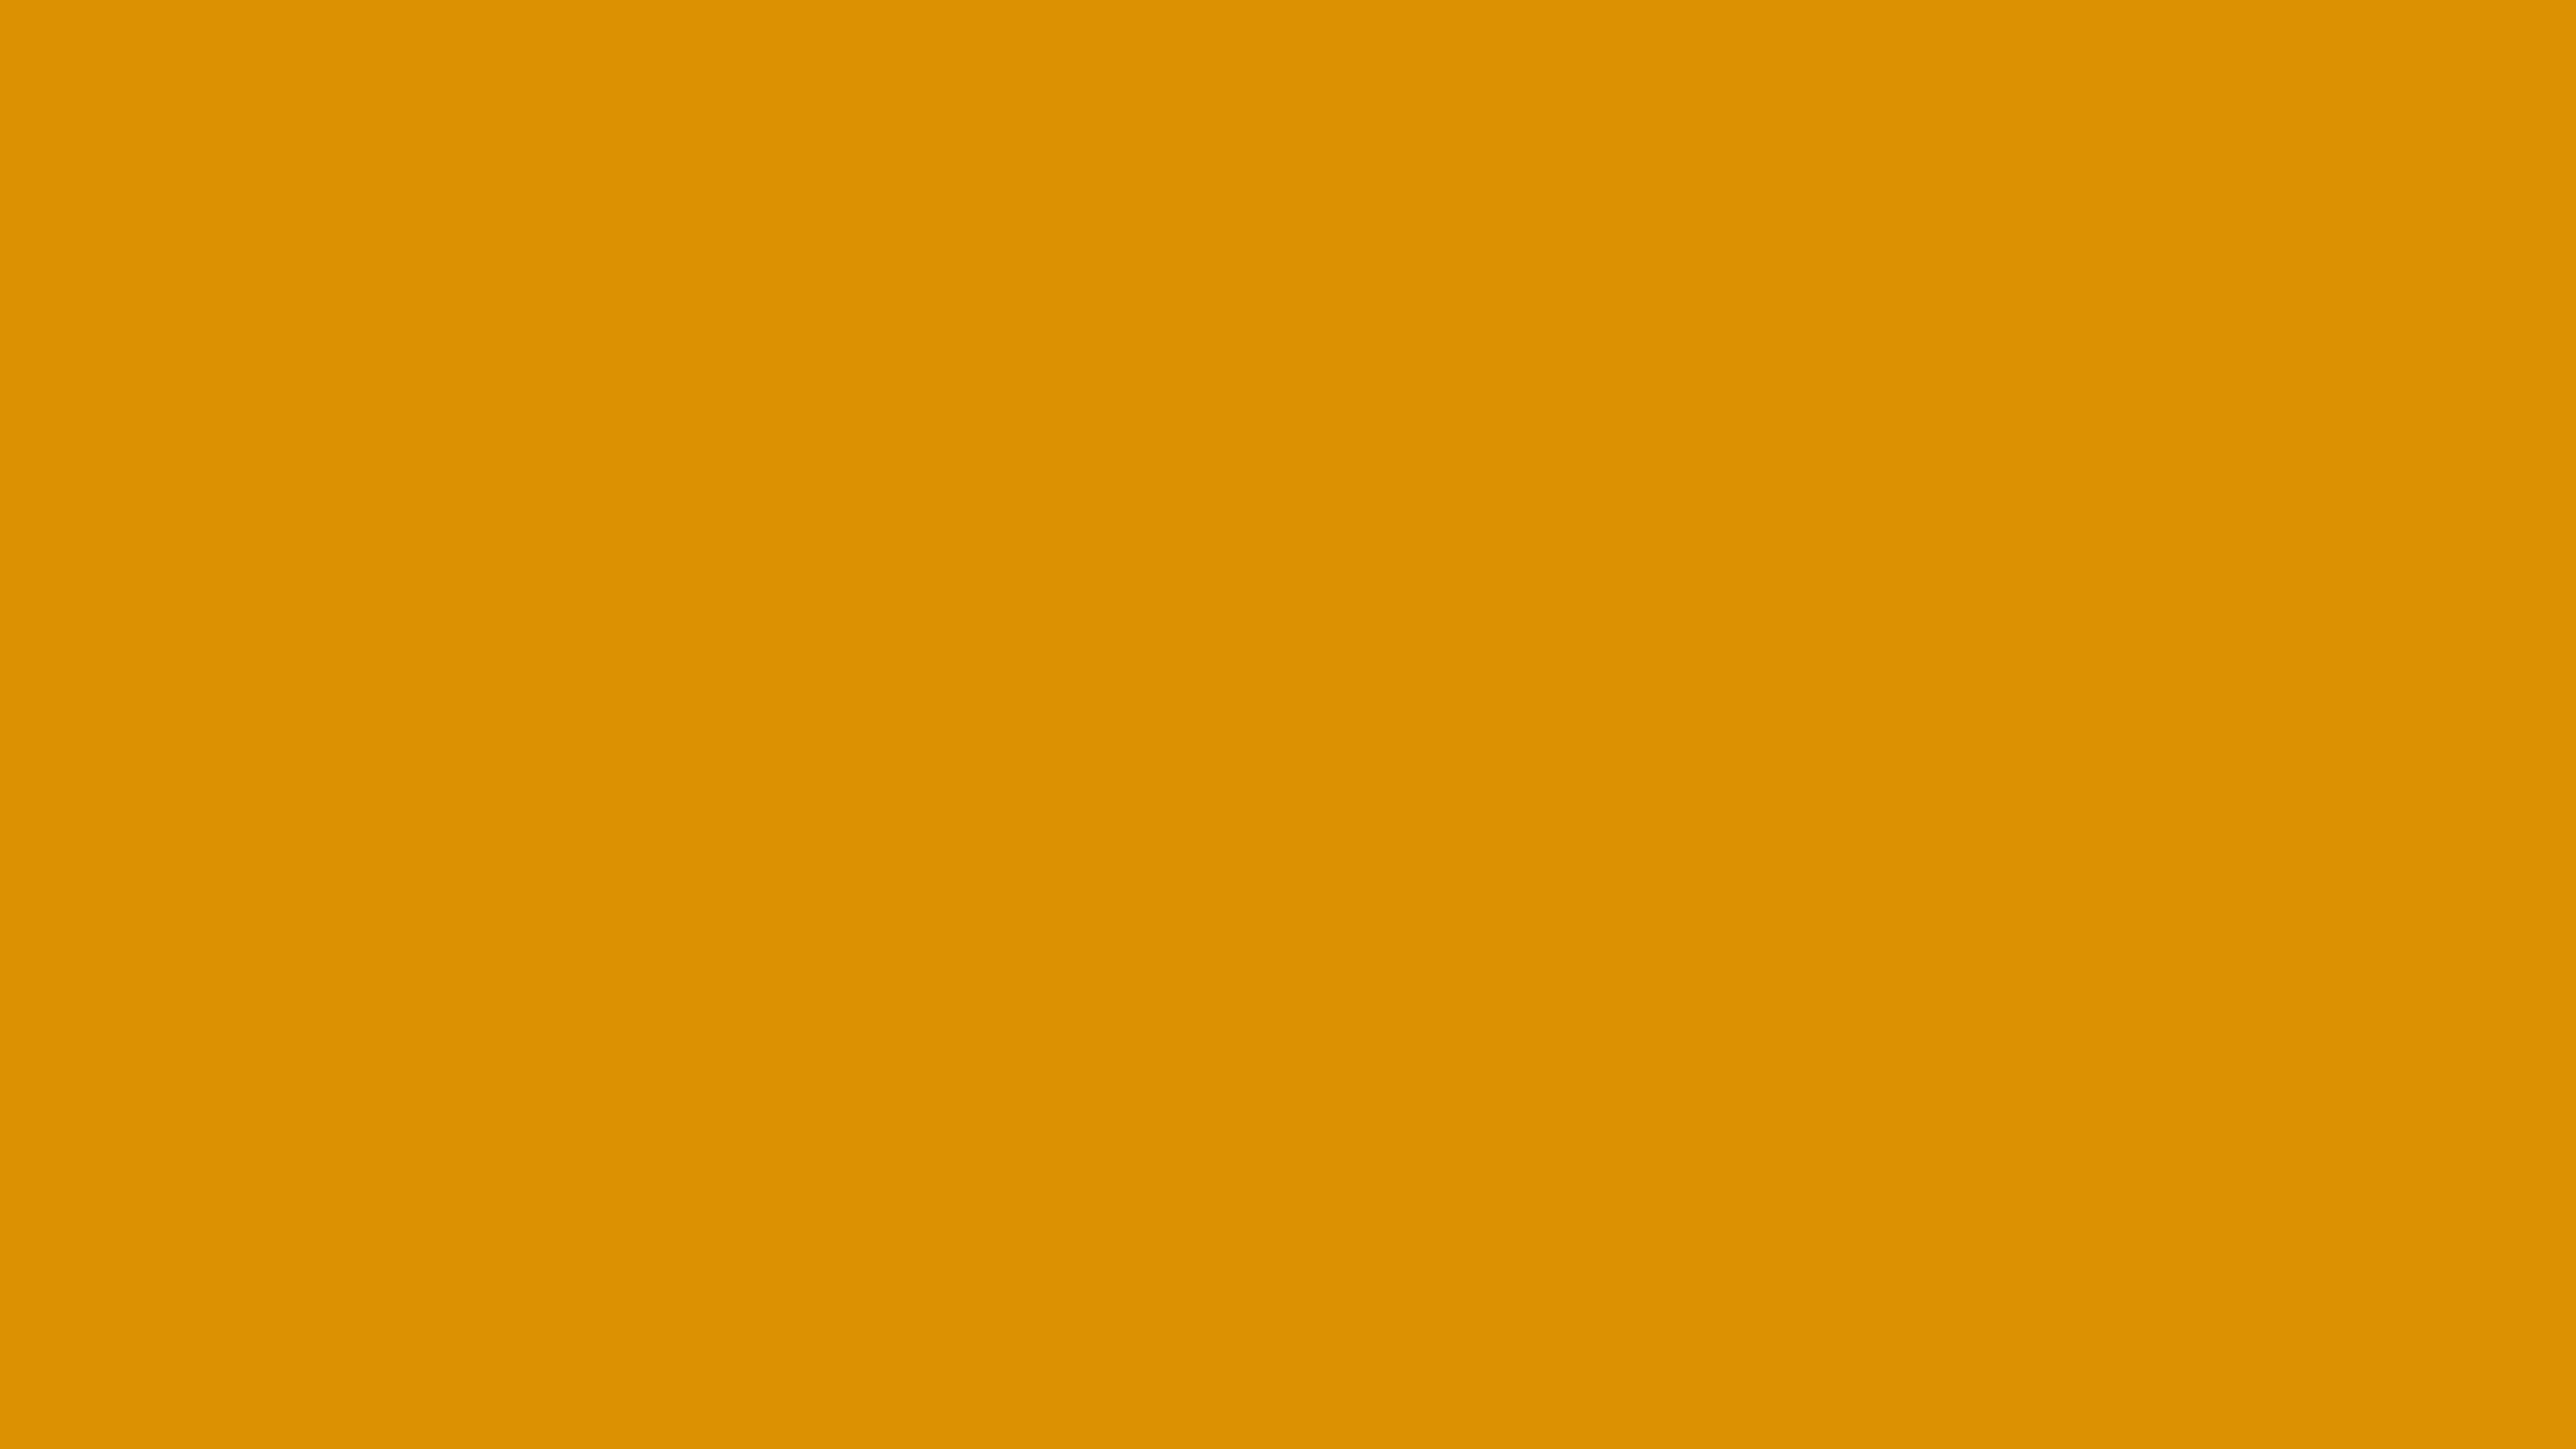 4096x2304 Harvest Gold Solid Color Background